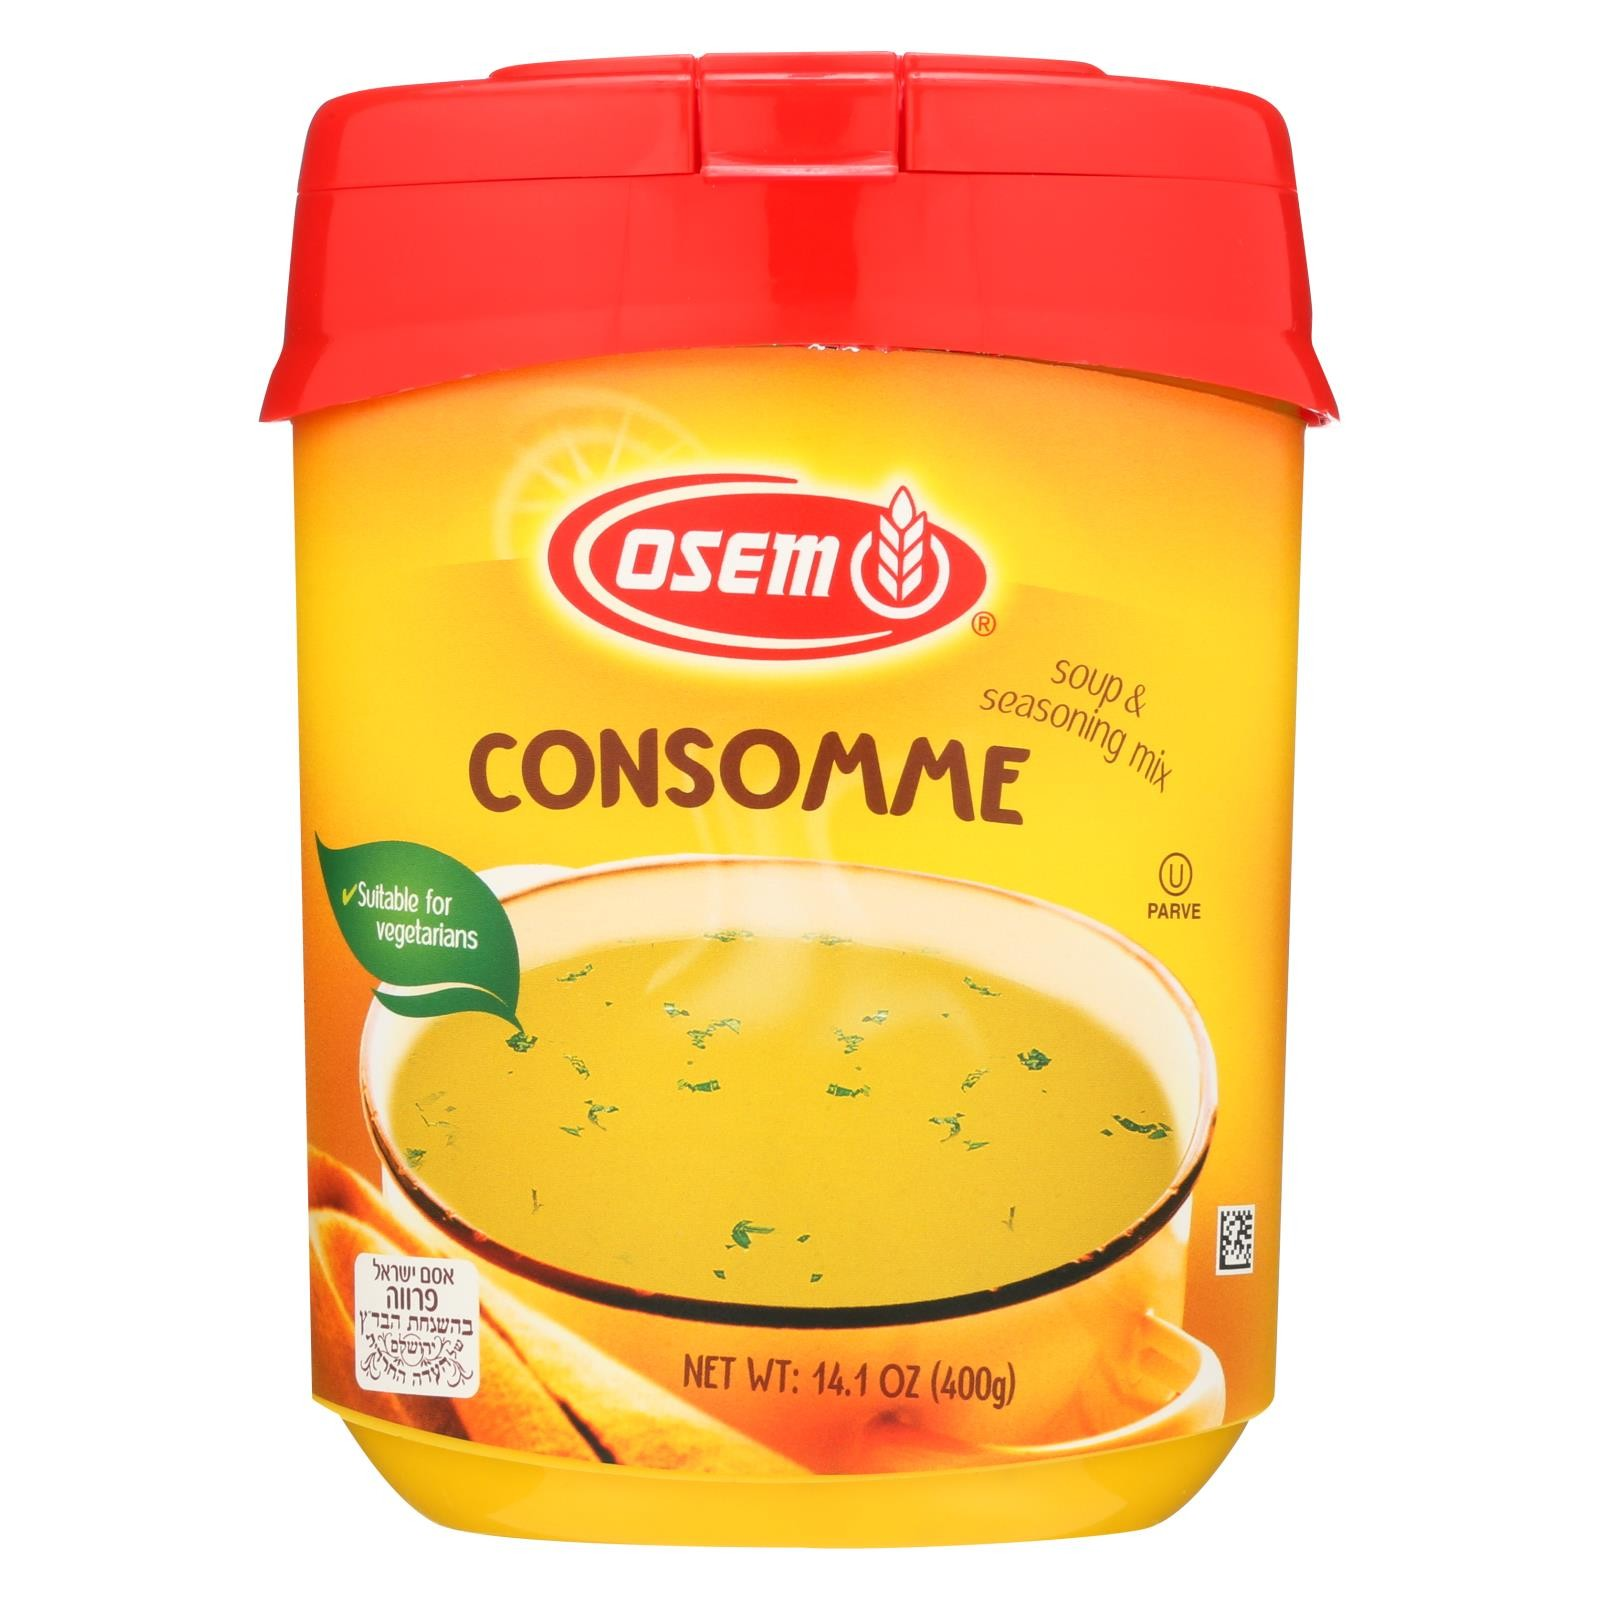 Osem Consomme Soup and Seasoning Mix - 14.1 oz.